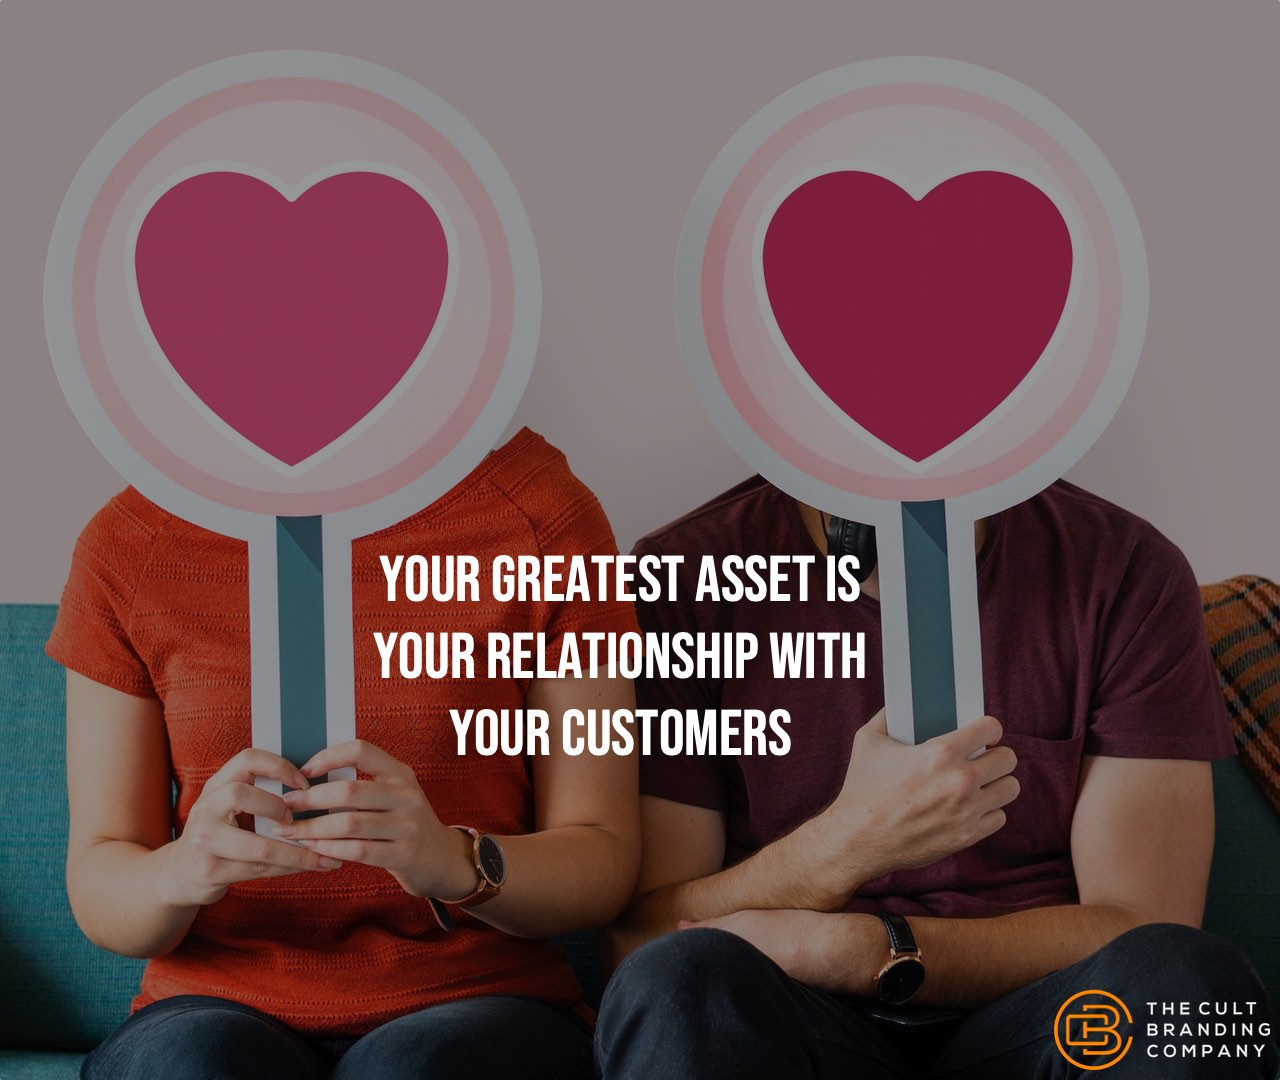 Your greatest asset is your relationship with your customers.